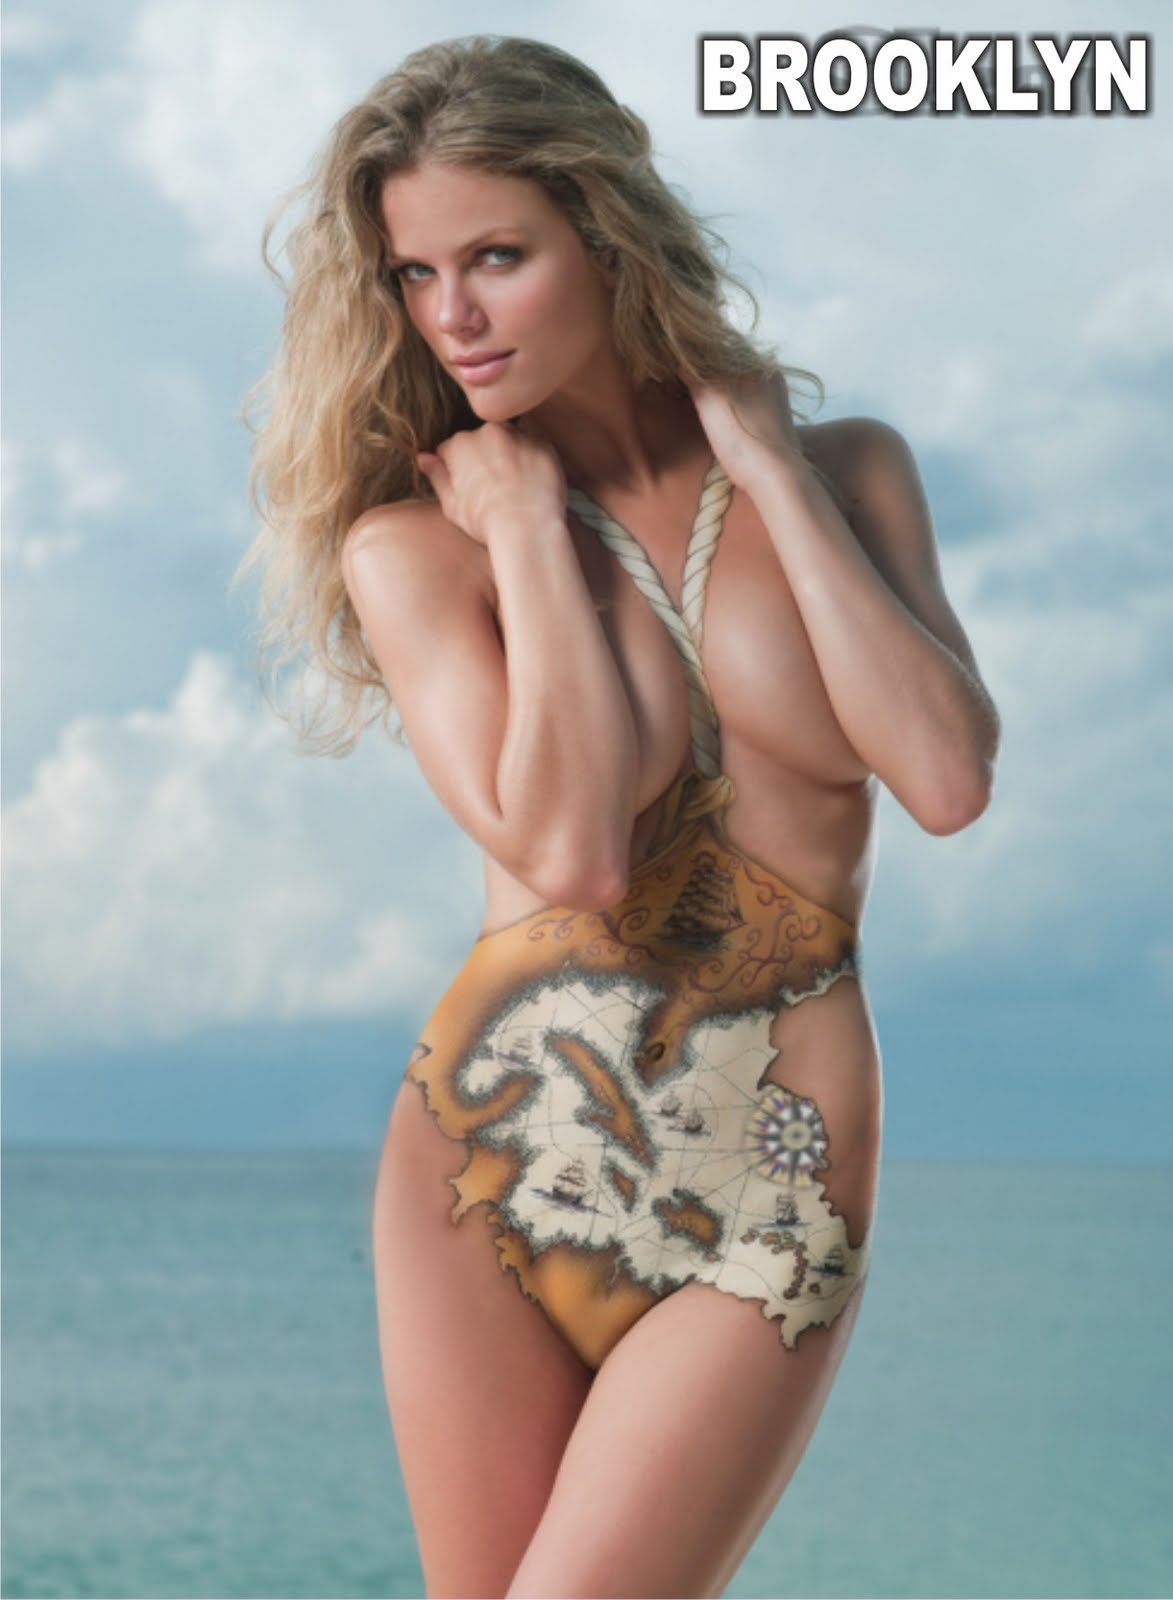 Brooklyn decker body paint hot girls in bikini for Best body paint pics